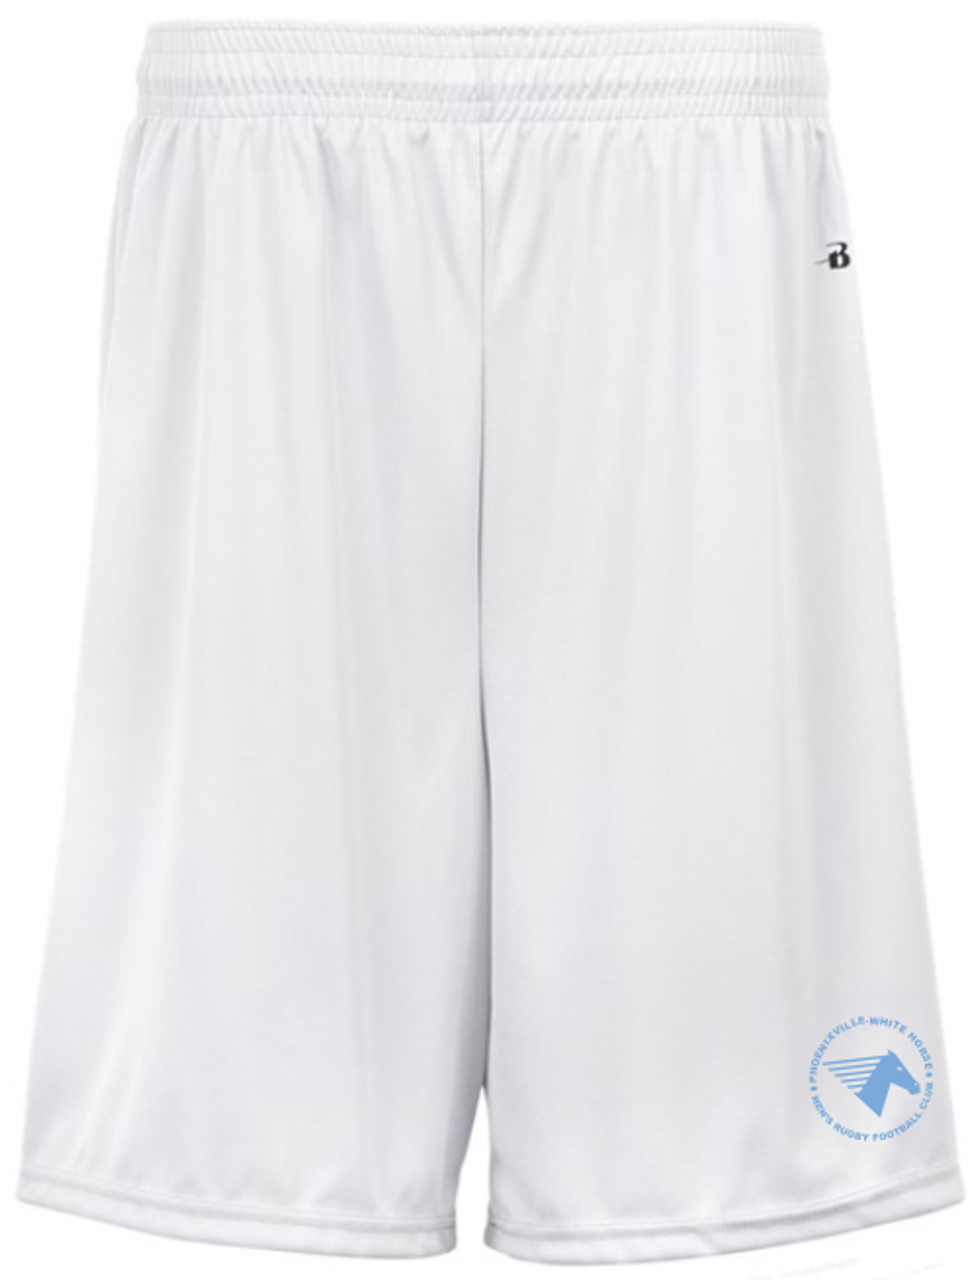 White Horse RFC Gym Short, White